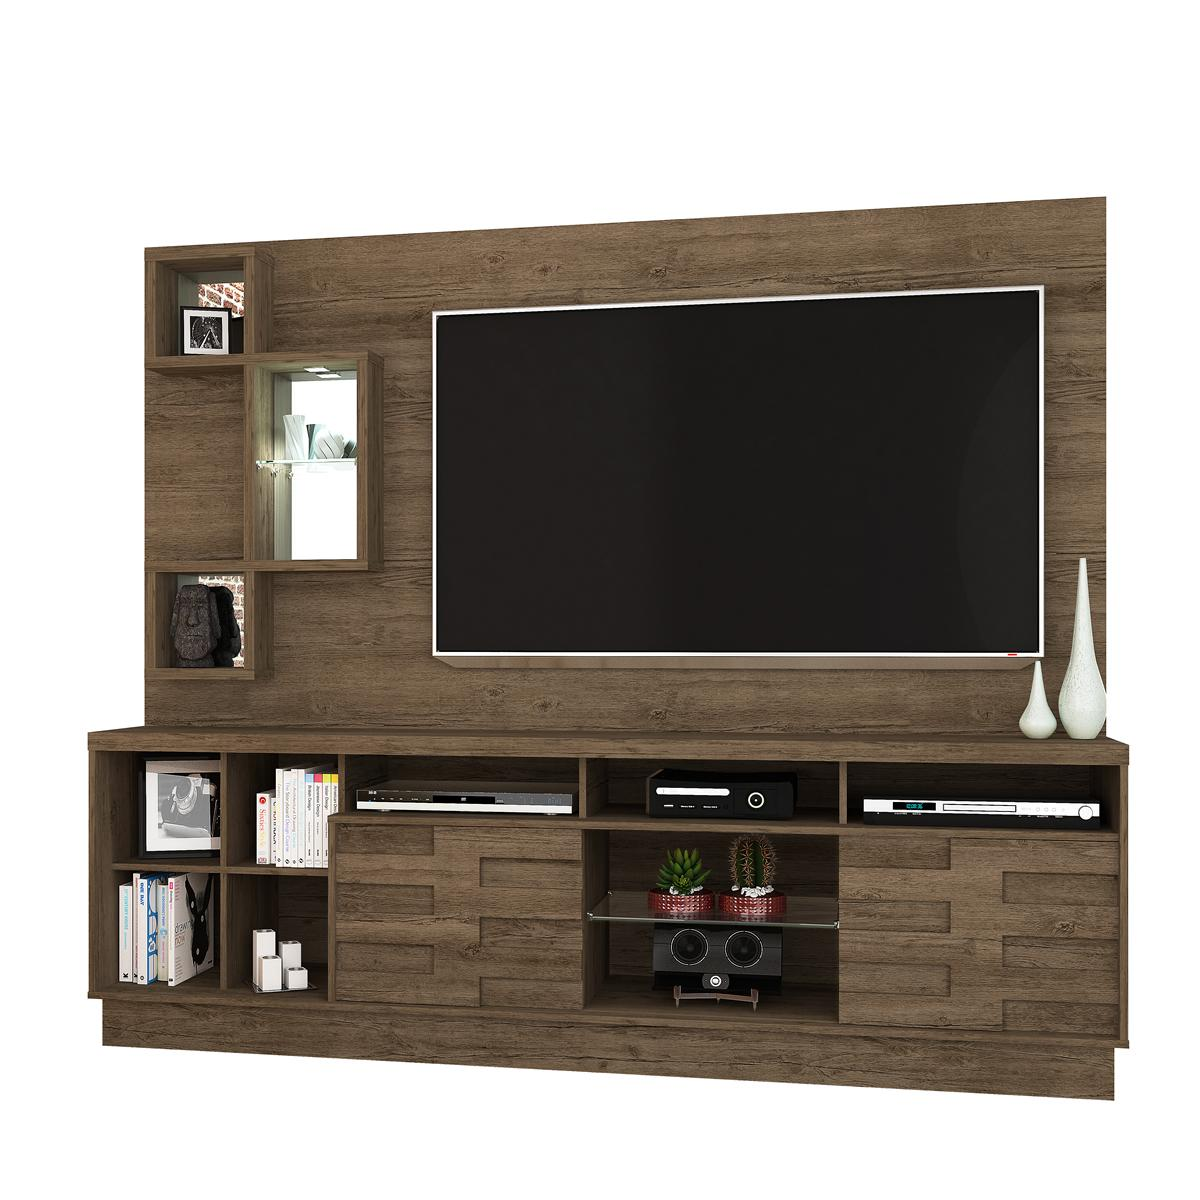 Home Theater Heitor - Rijo - Madetec